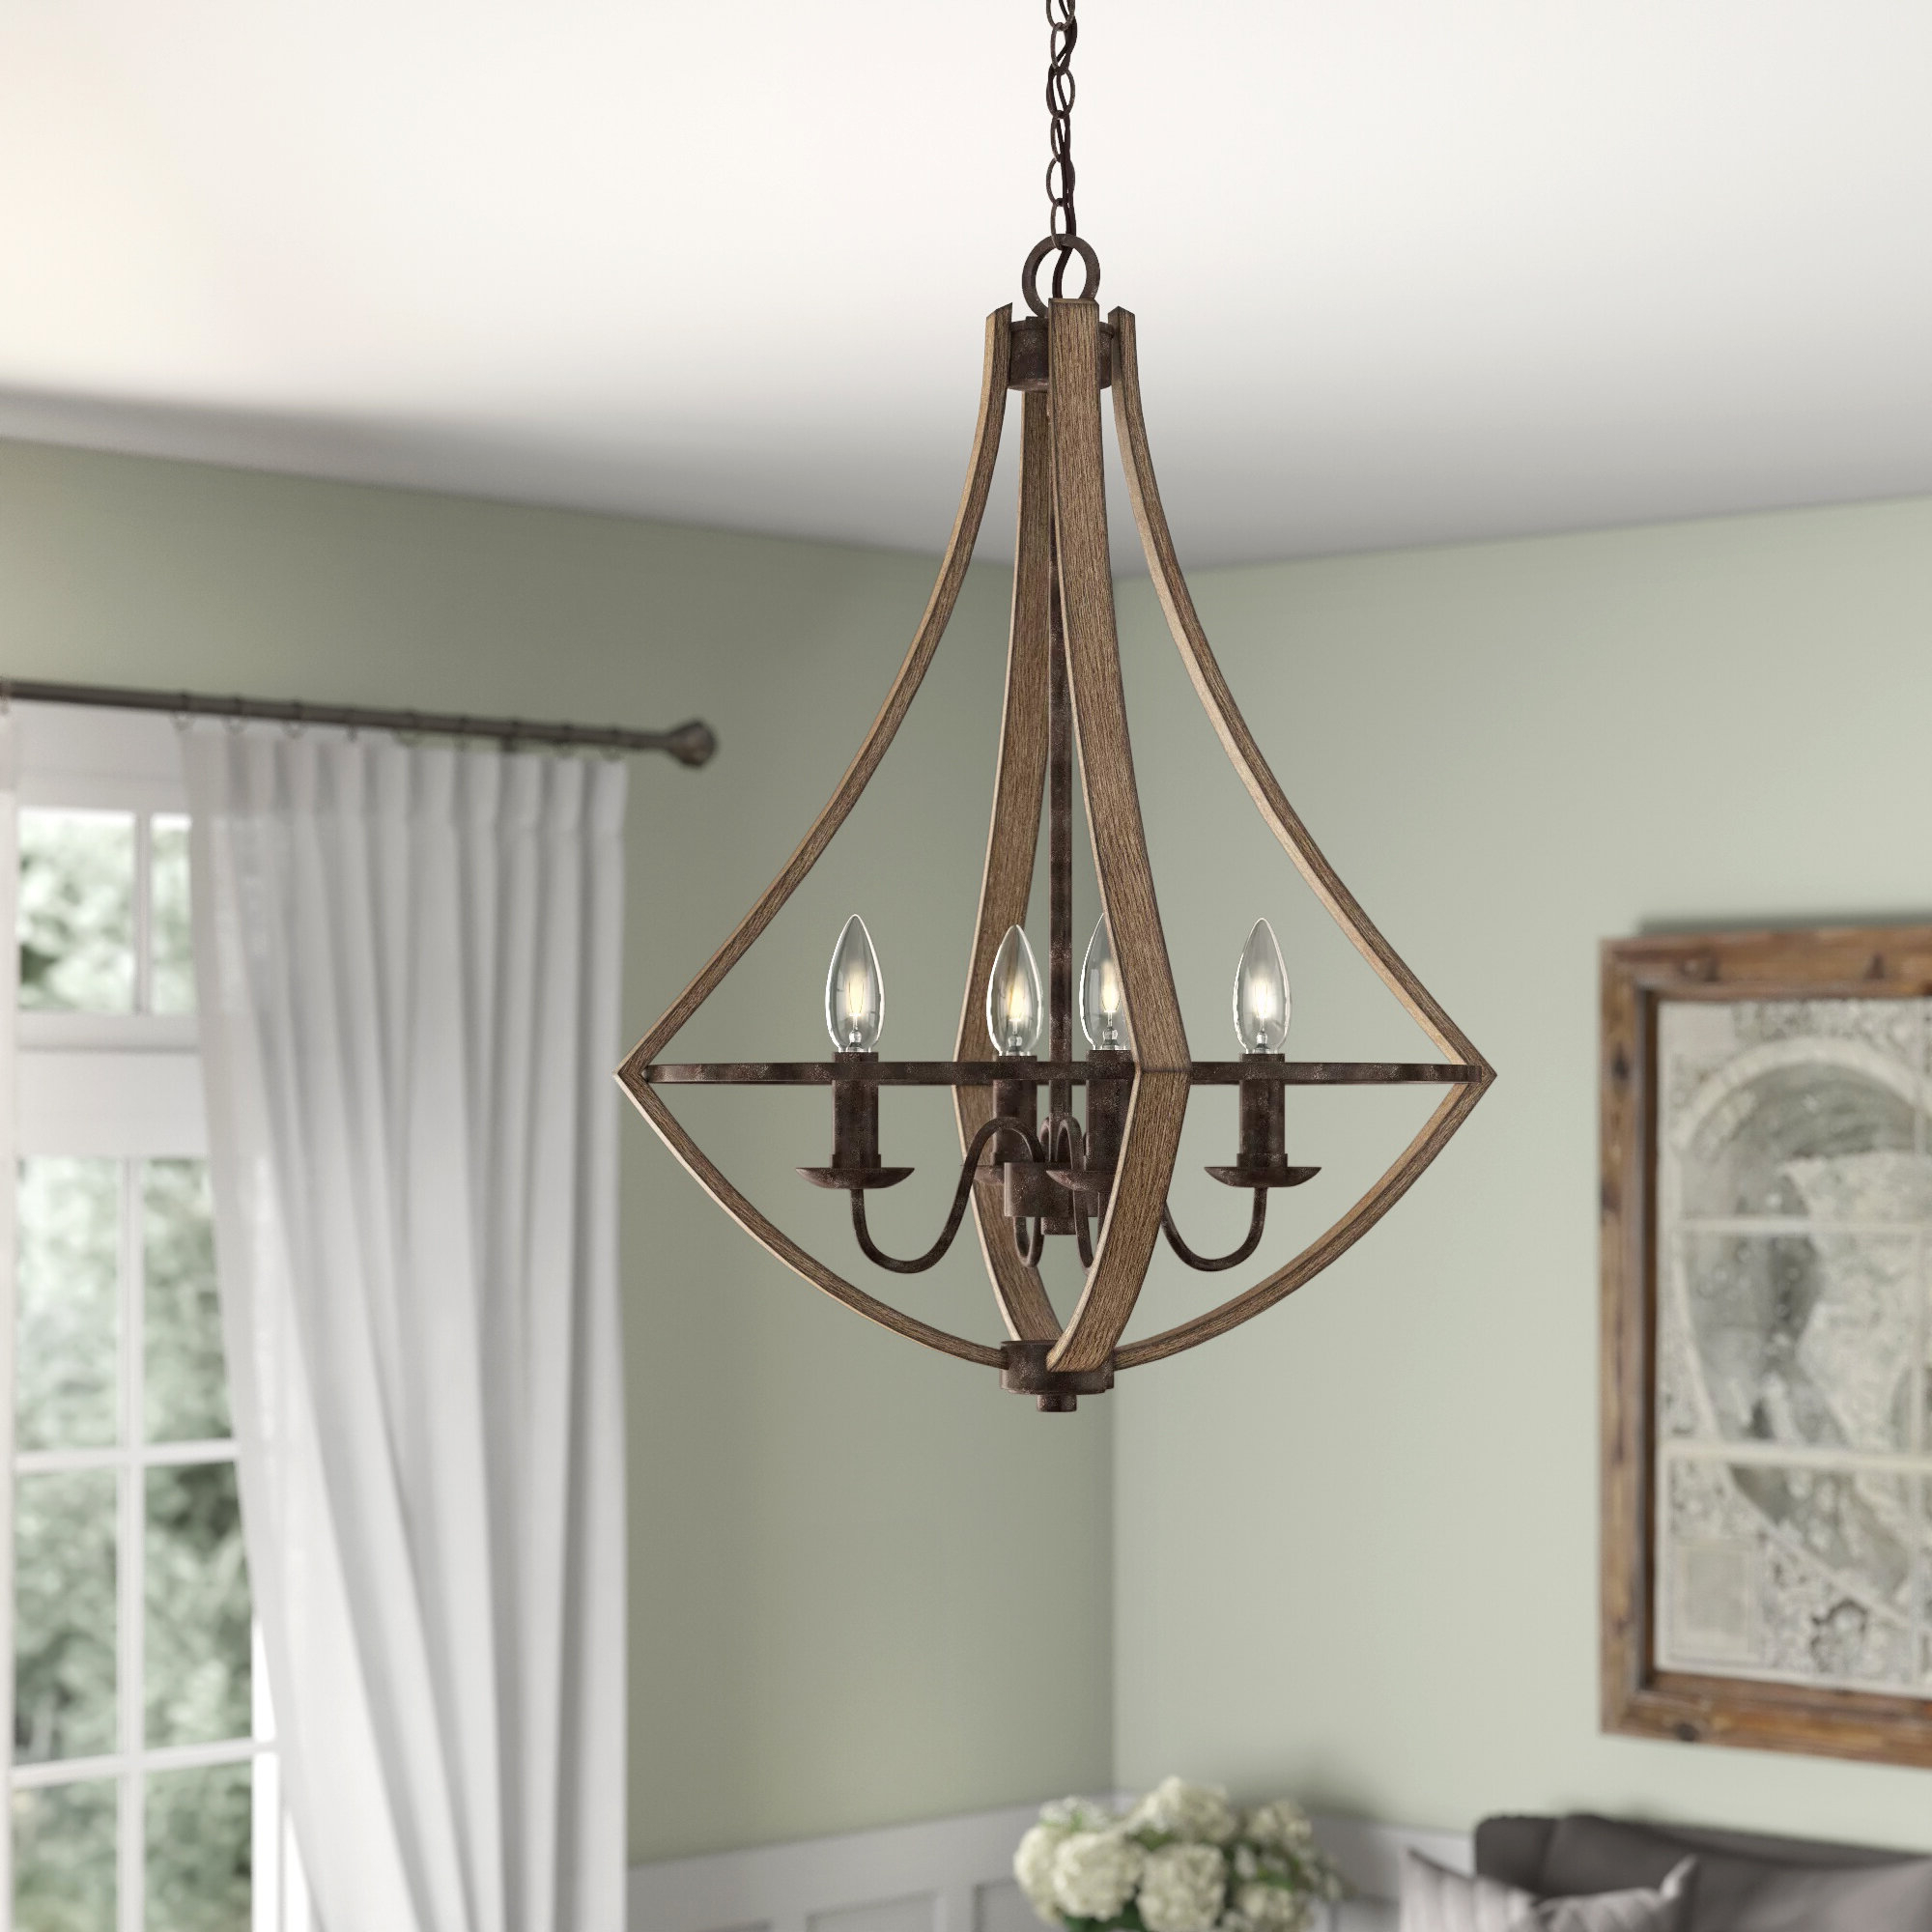 Preferred Bennington 4 Light Candle Style Chandeliers In Reimers 4 Light Candle Style Chandelier (View 10 of 20)